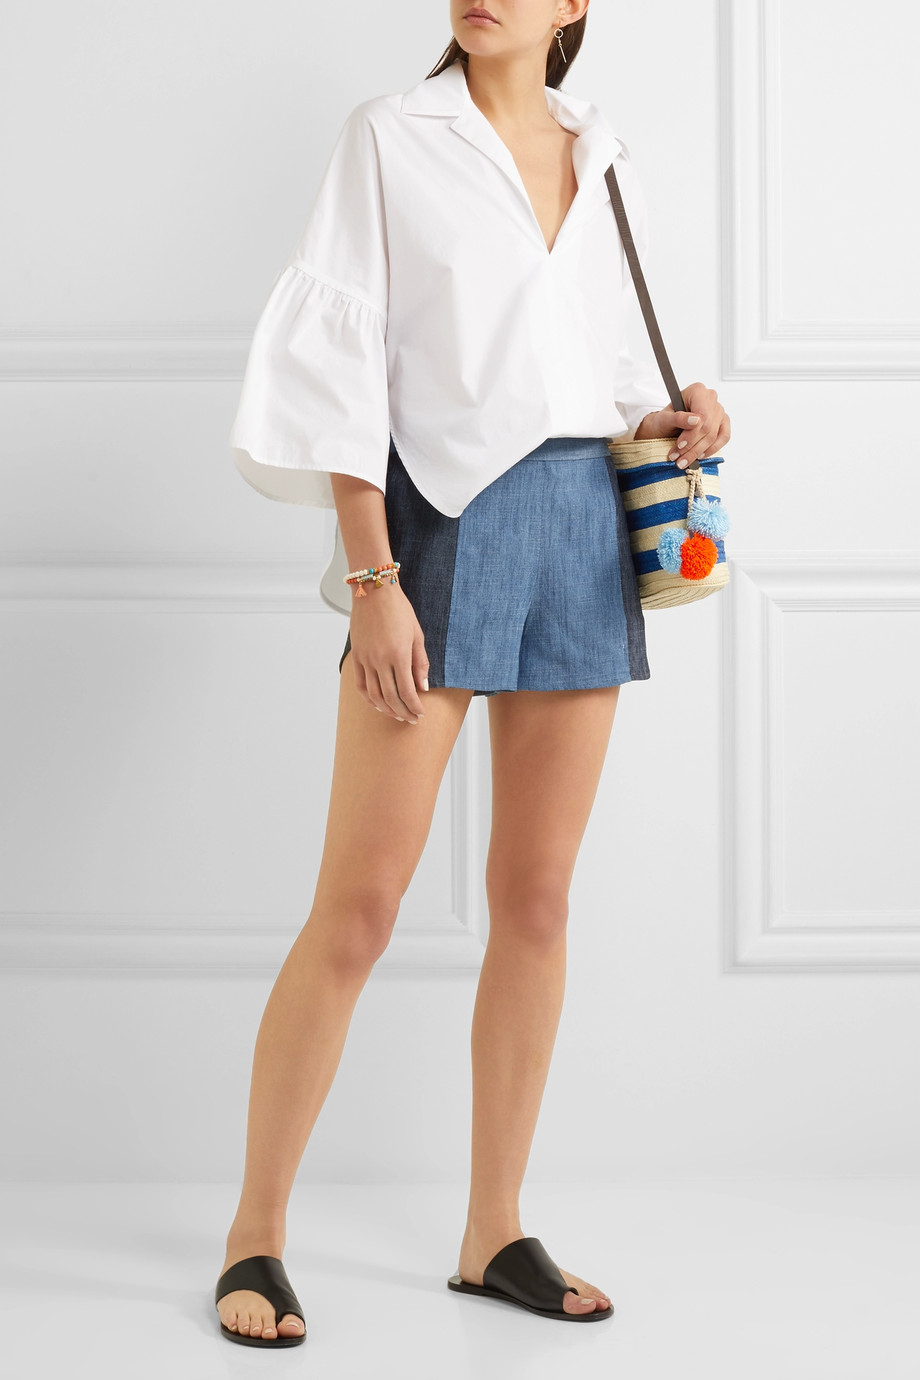 how to wear denim shorts 8